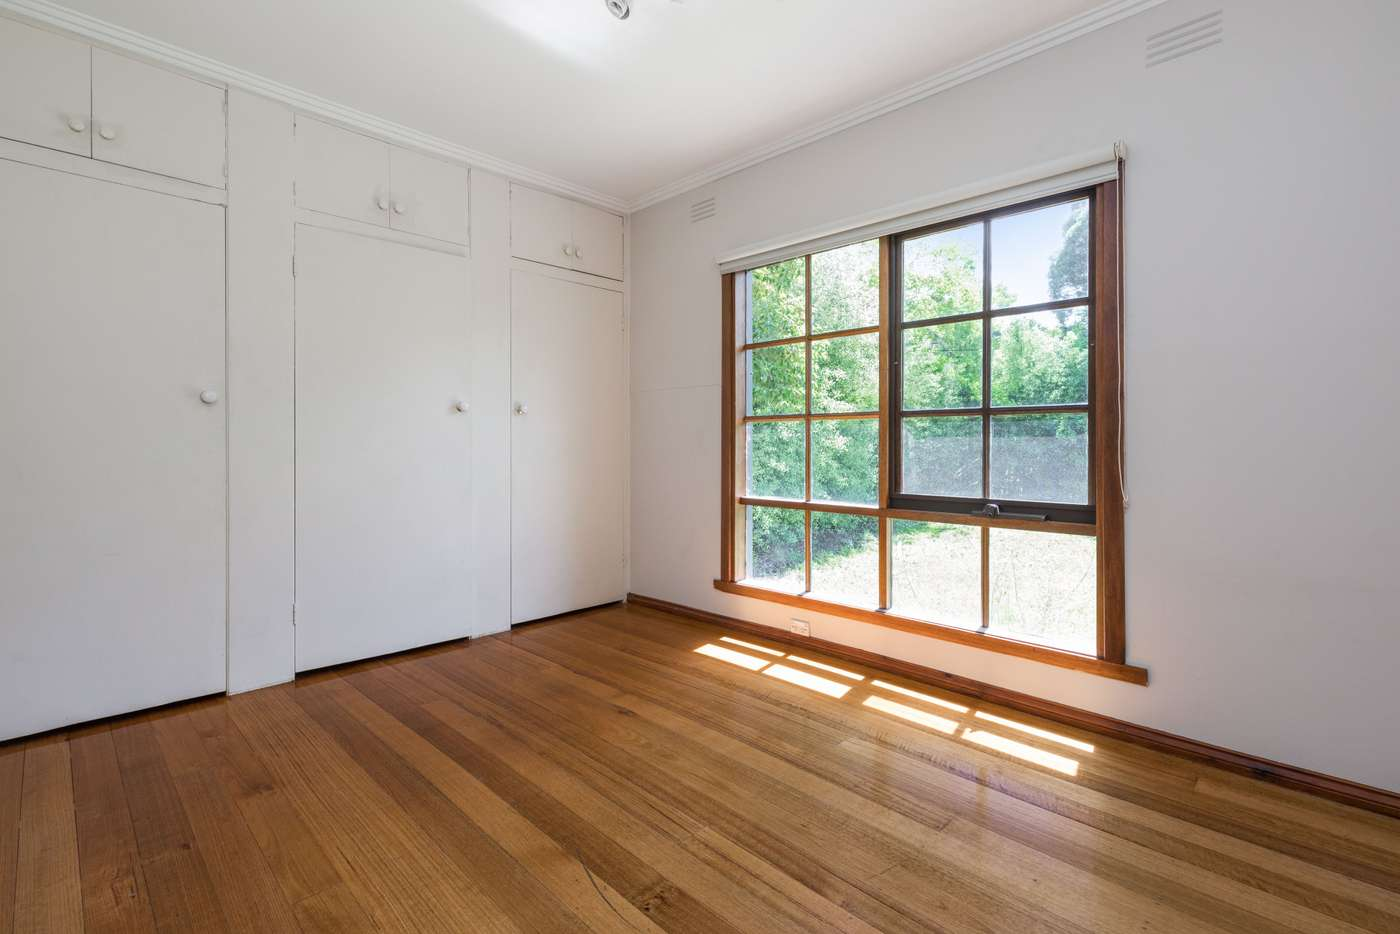 Sixth view of Homely house listing, 1/7 Lucille Avenue, Croydon South VIC 3136